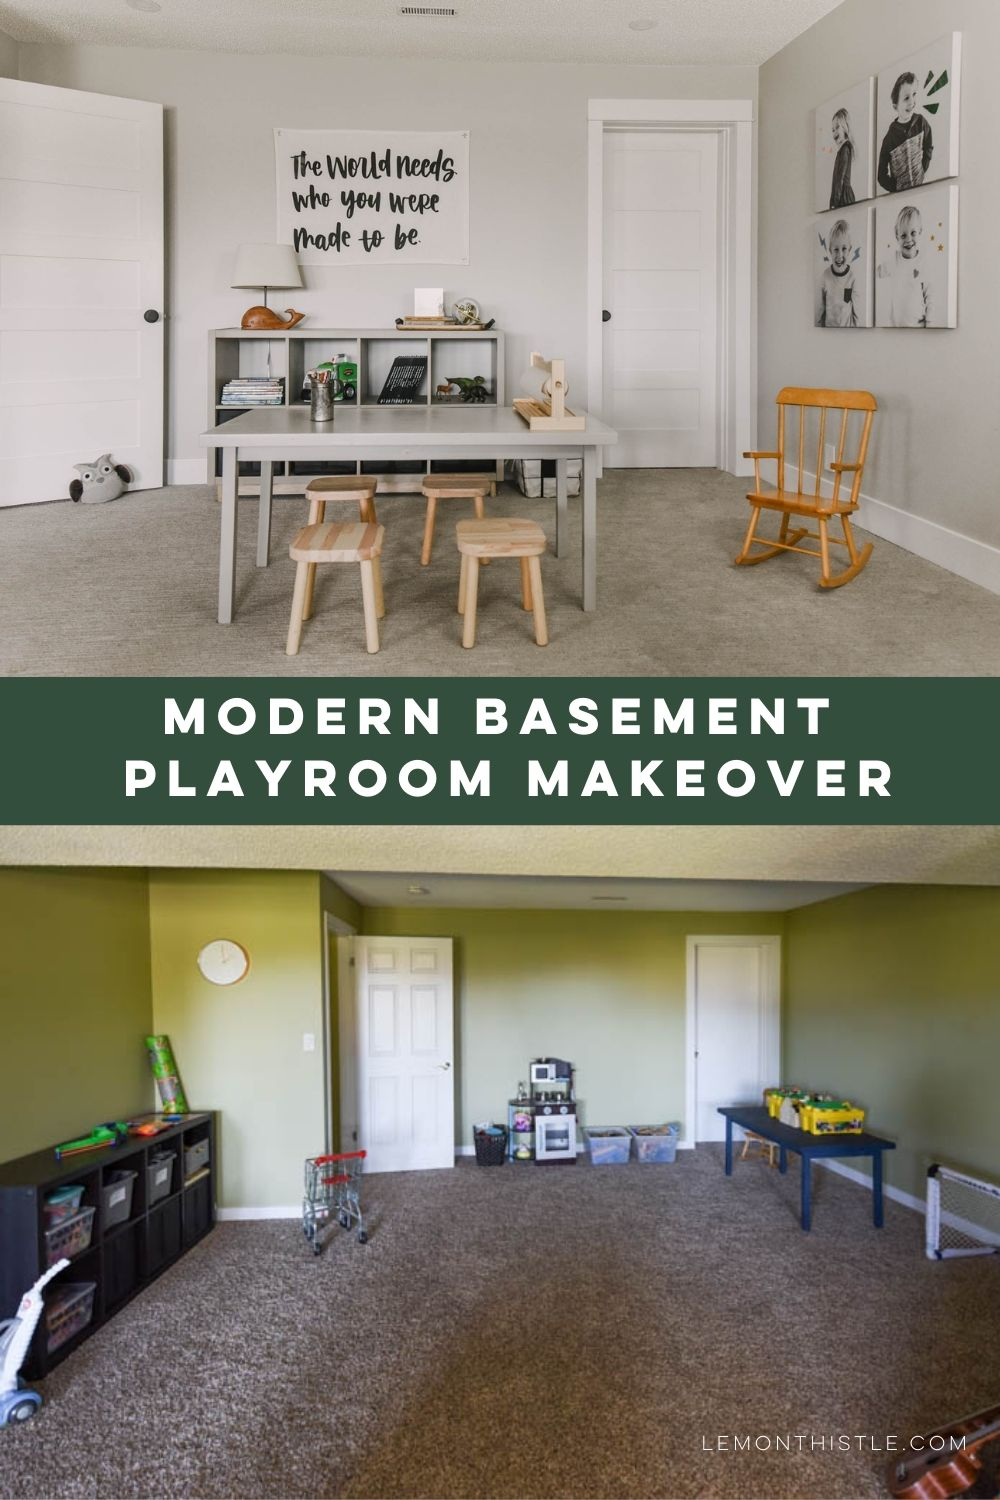 before and after photo with text: modern basement playroom makeover